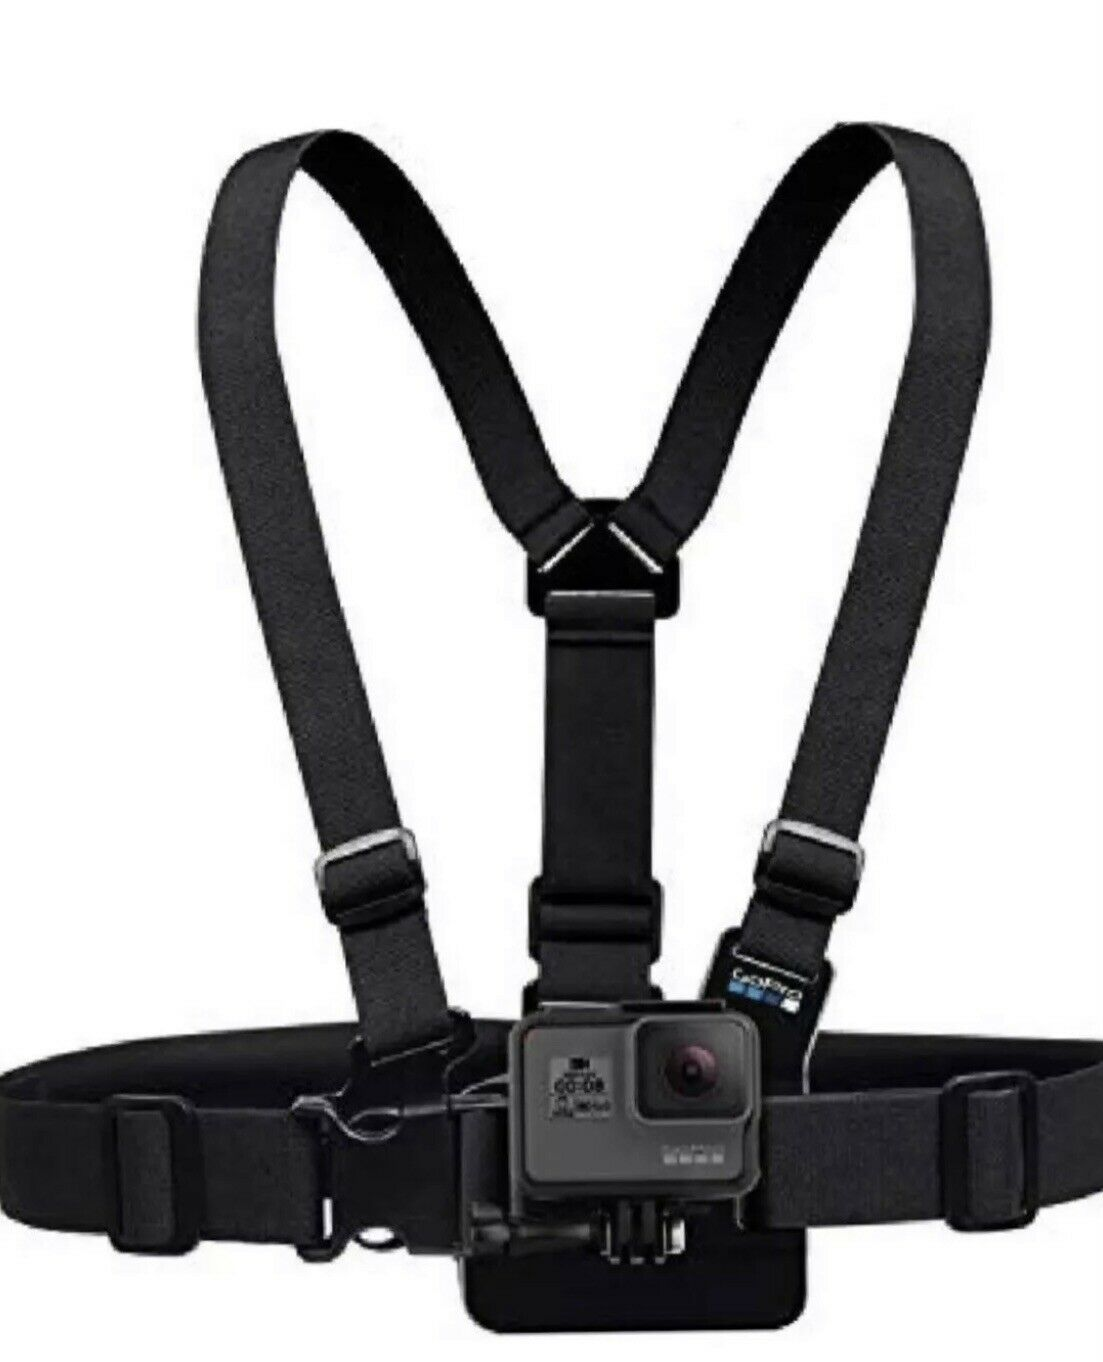 Genuine GoPro Chesty Adjustable Elastic Chest Mount Hero 3 3+ 4 5 6 7 8 Official